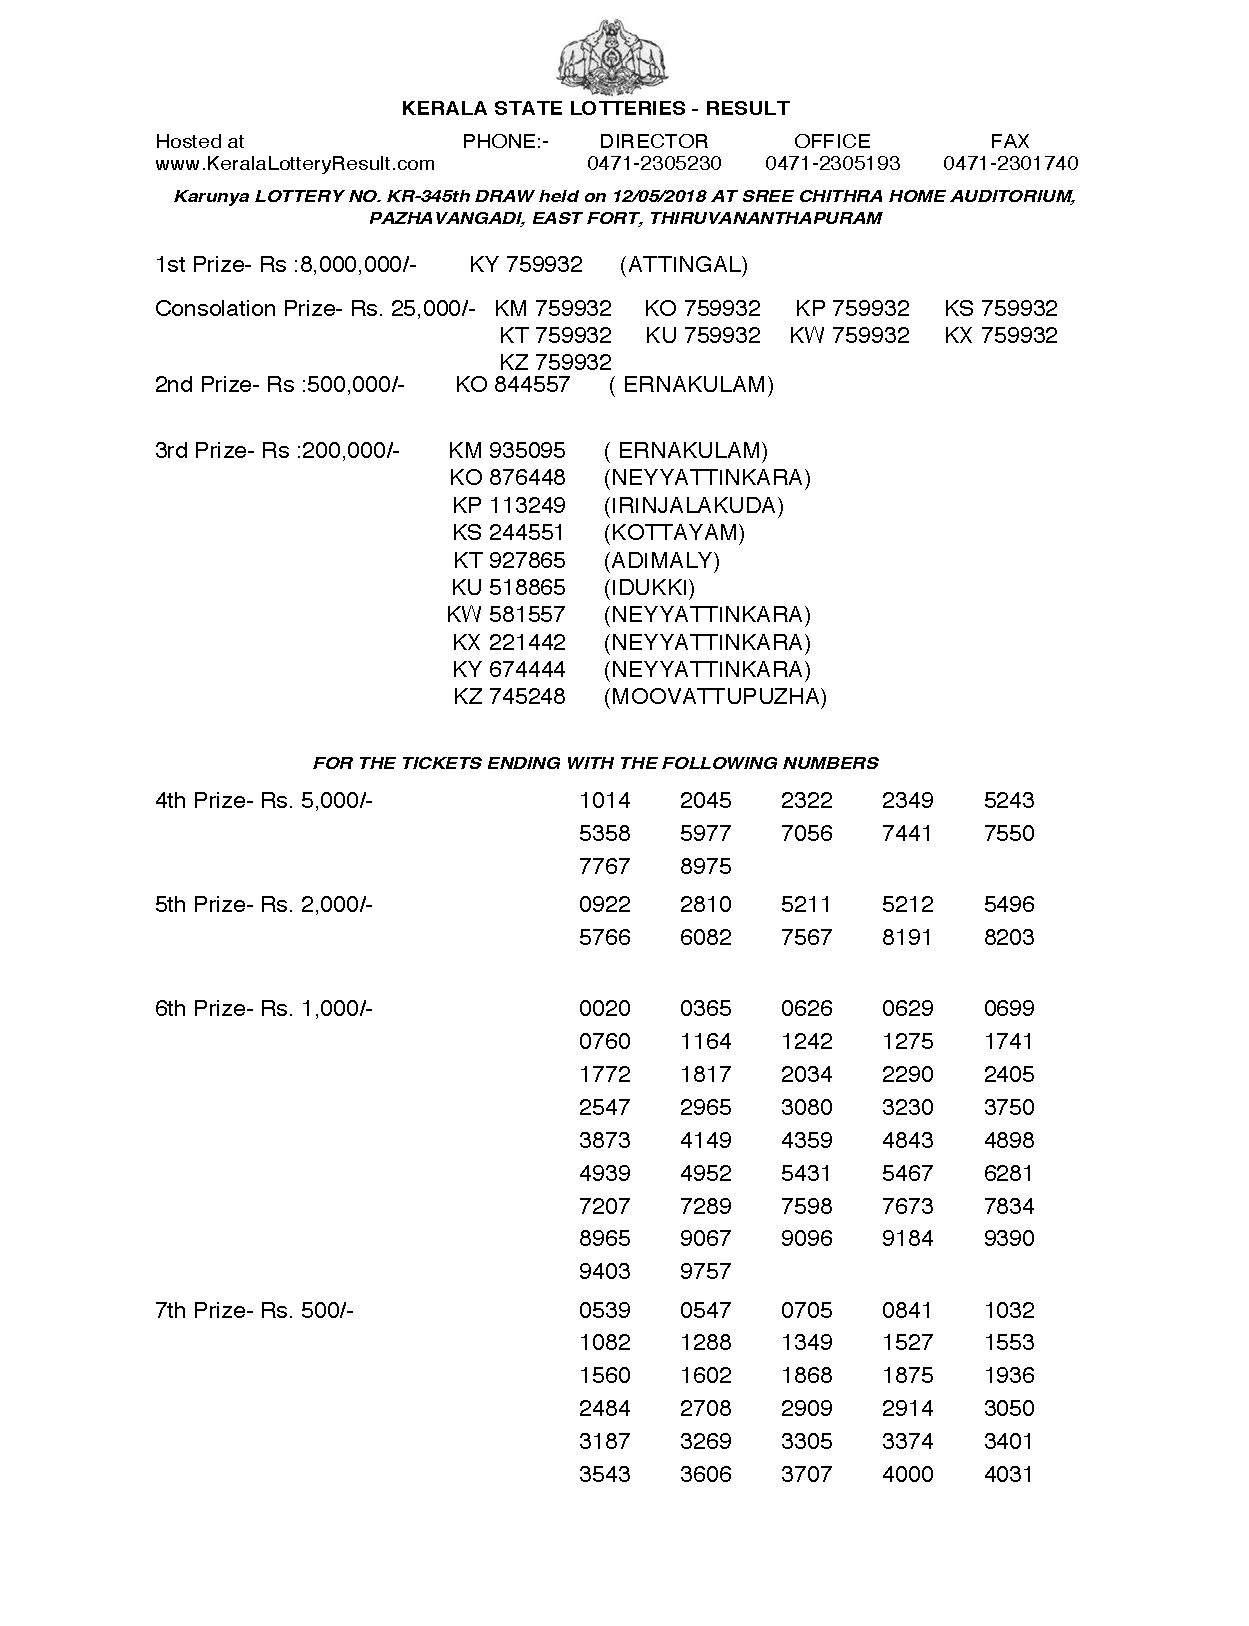 Karunya KR345 Kerala Lottery Results Screenshot: Page 1